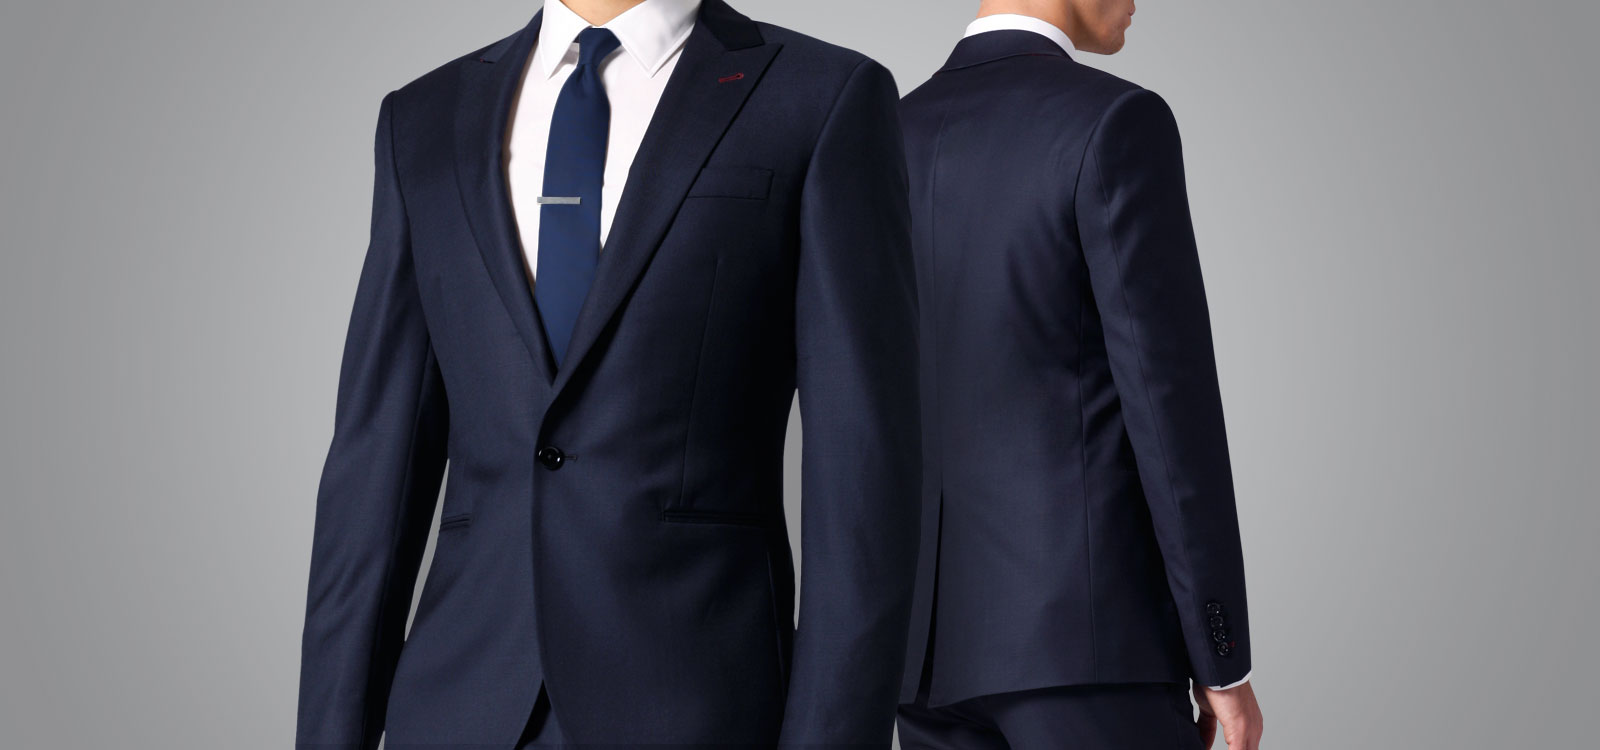 Nothing Suits You Like A Well-Made Suit | WeBlog UK